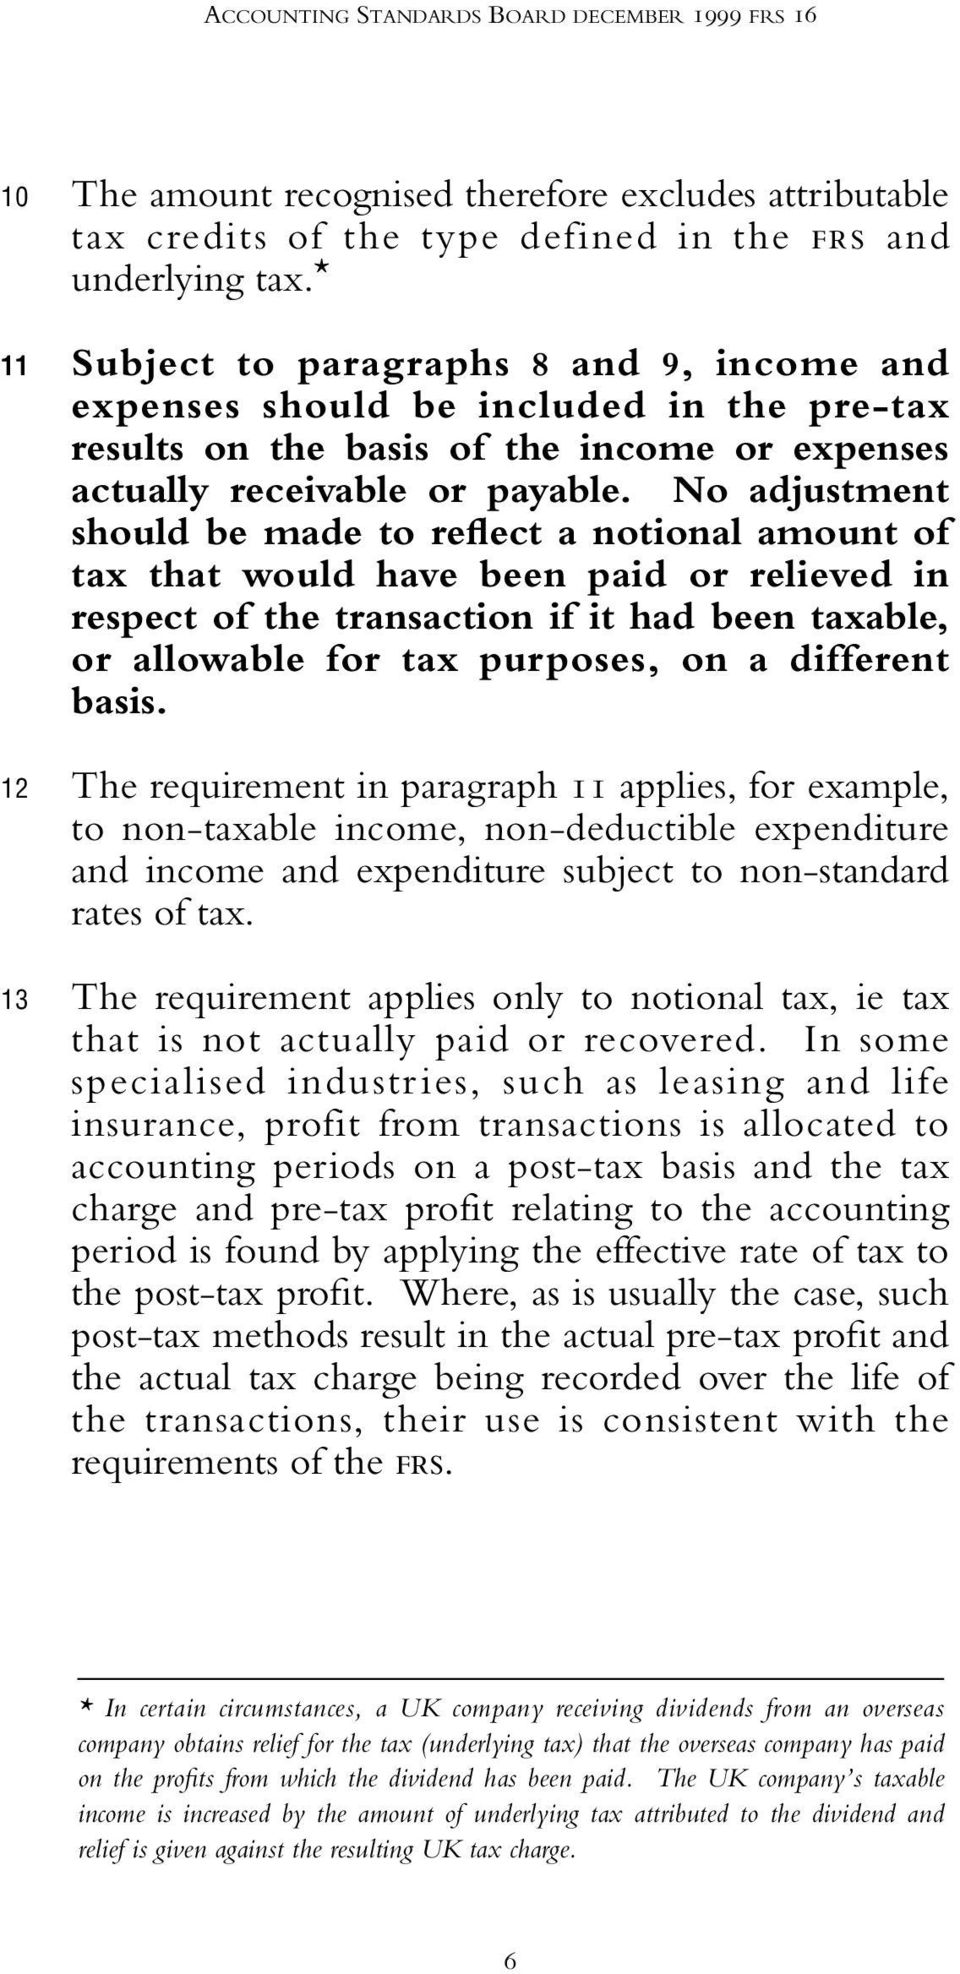 No adjustment should be made to reflect a notional amount of tax that would have been paid or relieved in respect of the transaction if it had been taxable, or allowable for tax purposes, on a